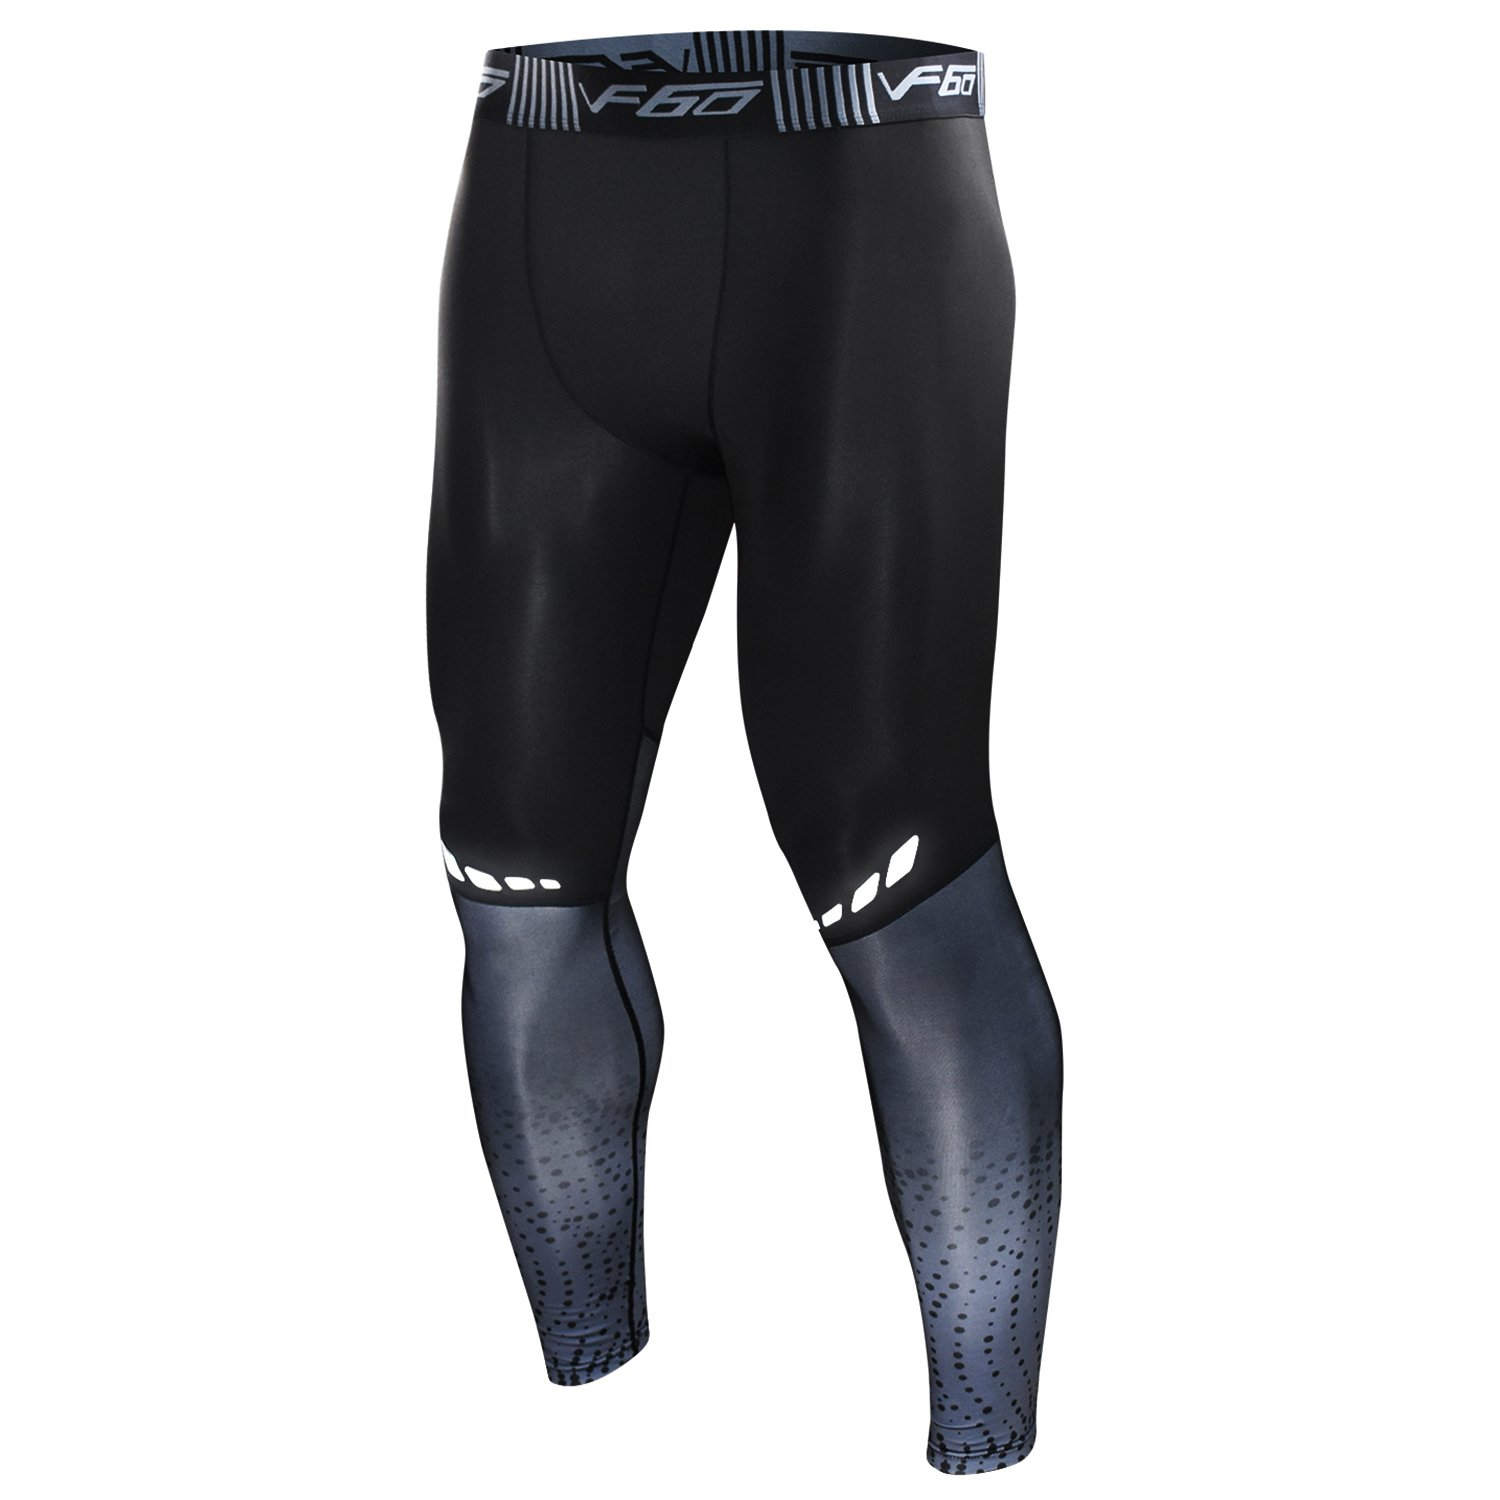 6830ff3f608fa Amazon.com: HURMES Men's Sports Compression Pants – Cool Dry Tights Running Baselayer  Workout Leggings for Gym, Hiking, Basketball: Clothing